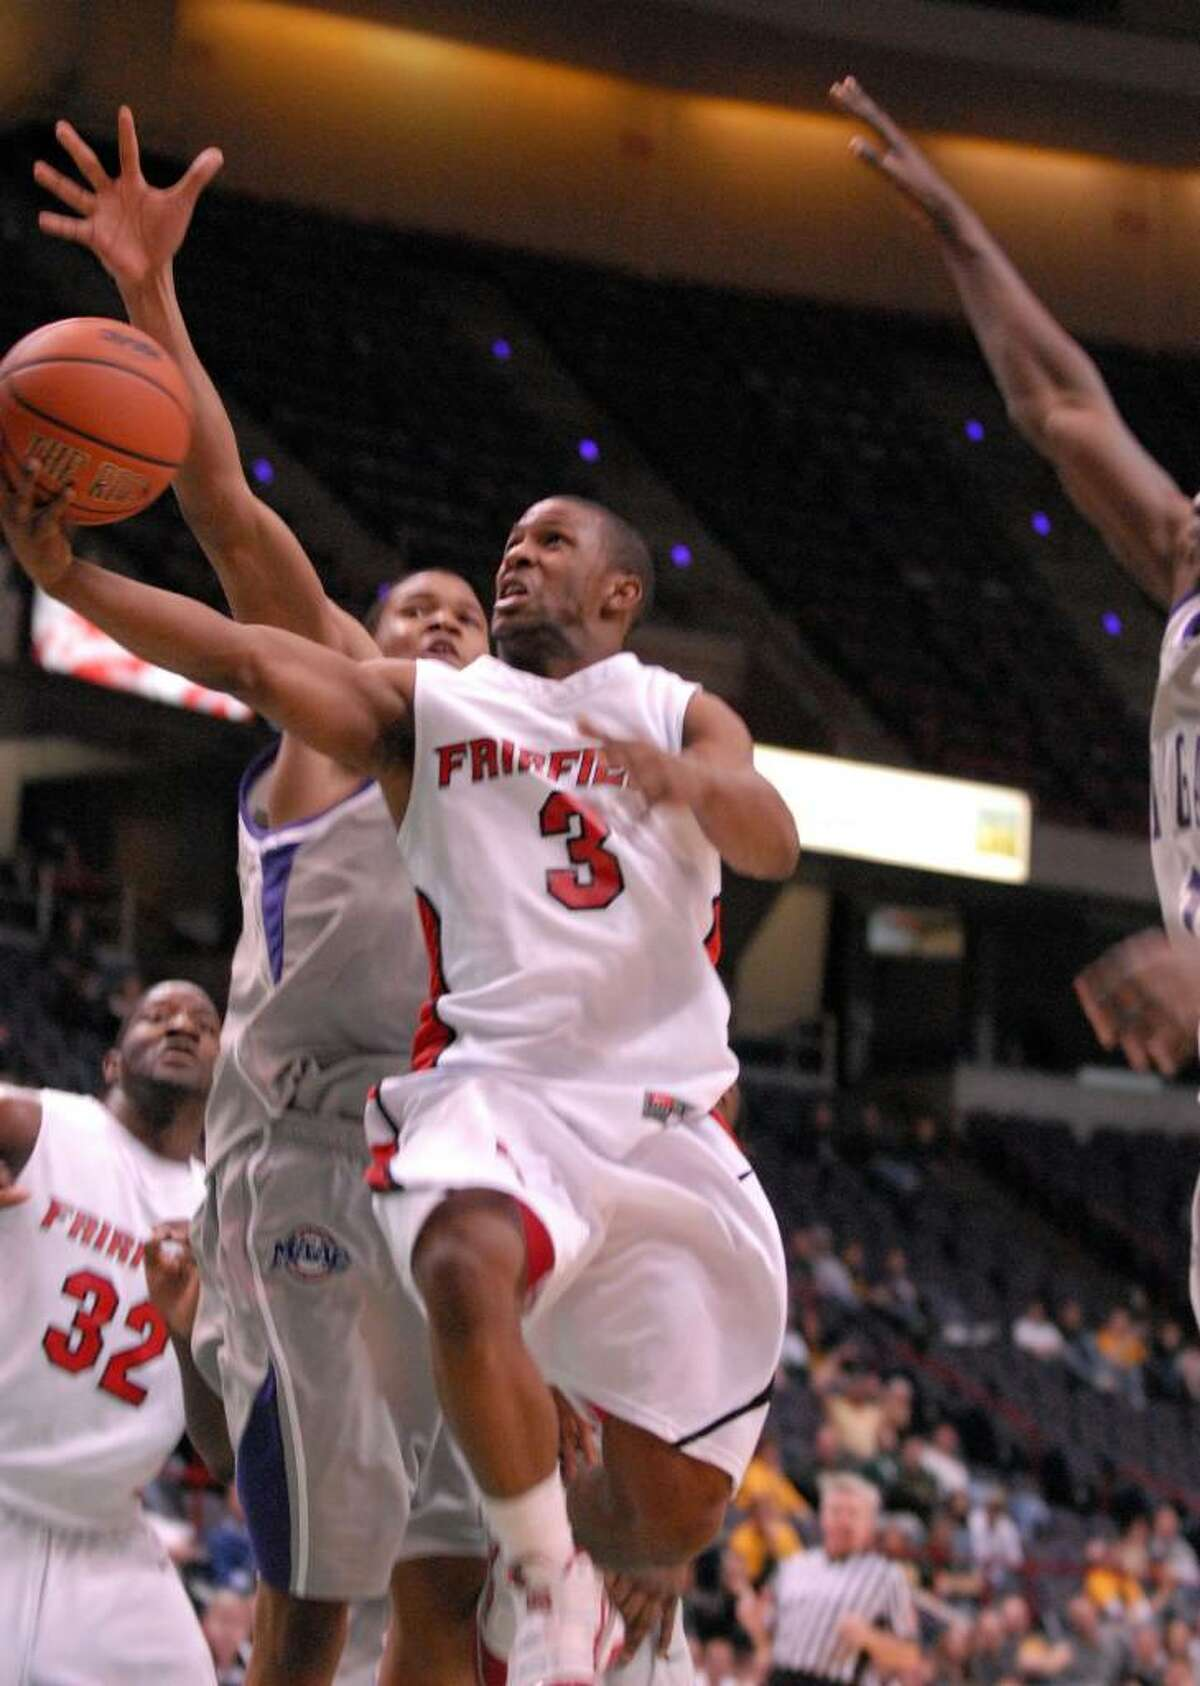 Fairfield's Derek Needham makes a lay up during the second half against Niagara, Sunday night March 7, 2010 at the Times Union Center in Albany. Fairfield beat Niagara 69 to 63 and will play in the MAAC champion game against Siena College Monday night. (Will Waldron /Times Union)